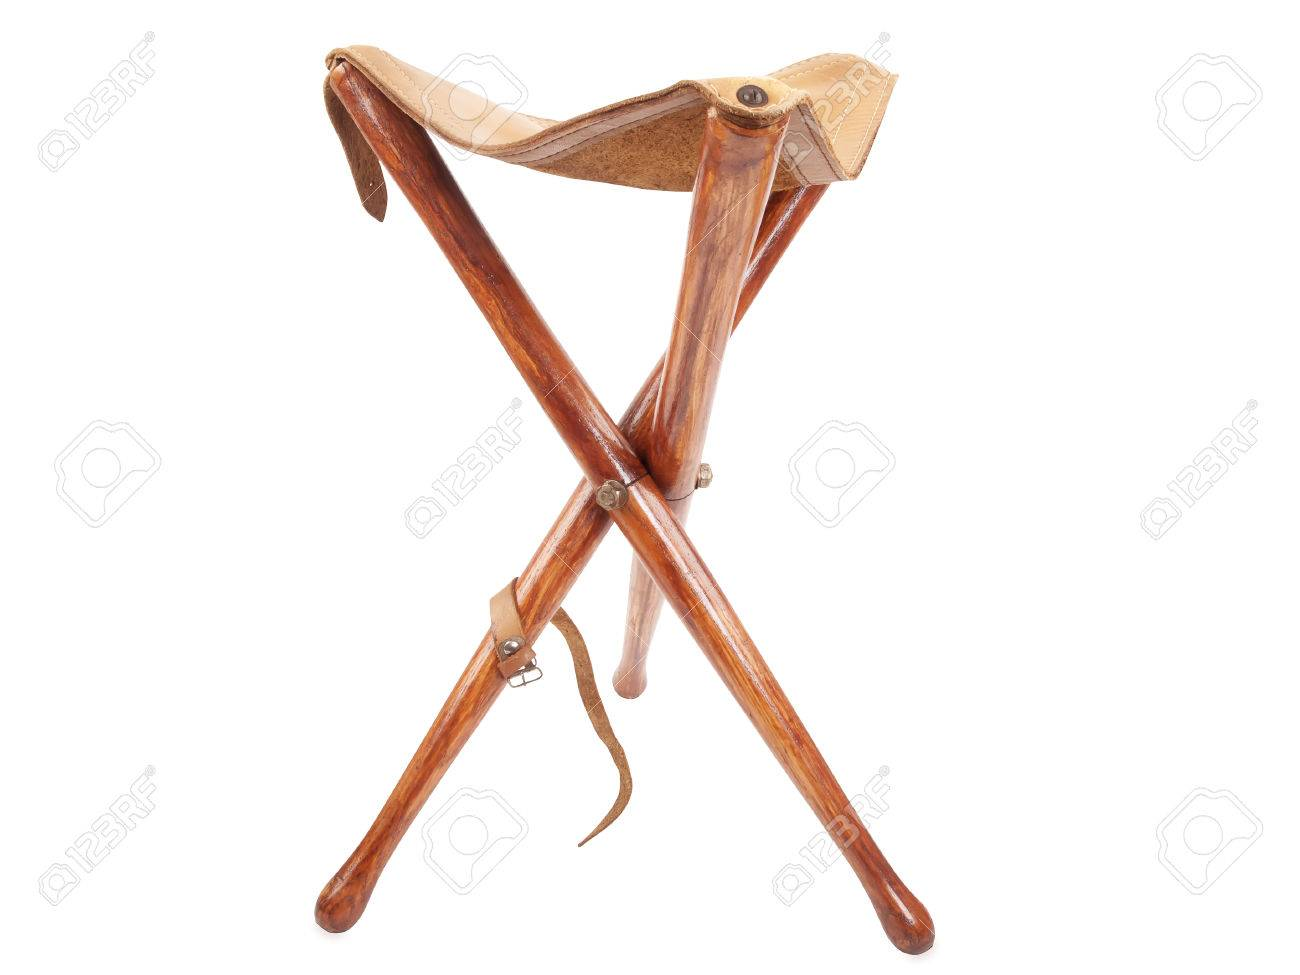 Stock Photo   Wooden Hunting Stool Isolated On White Background